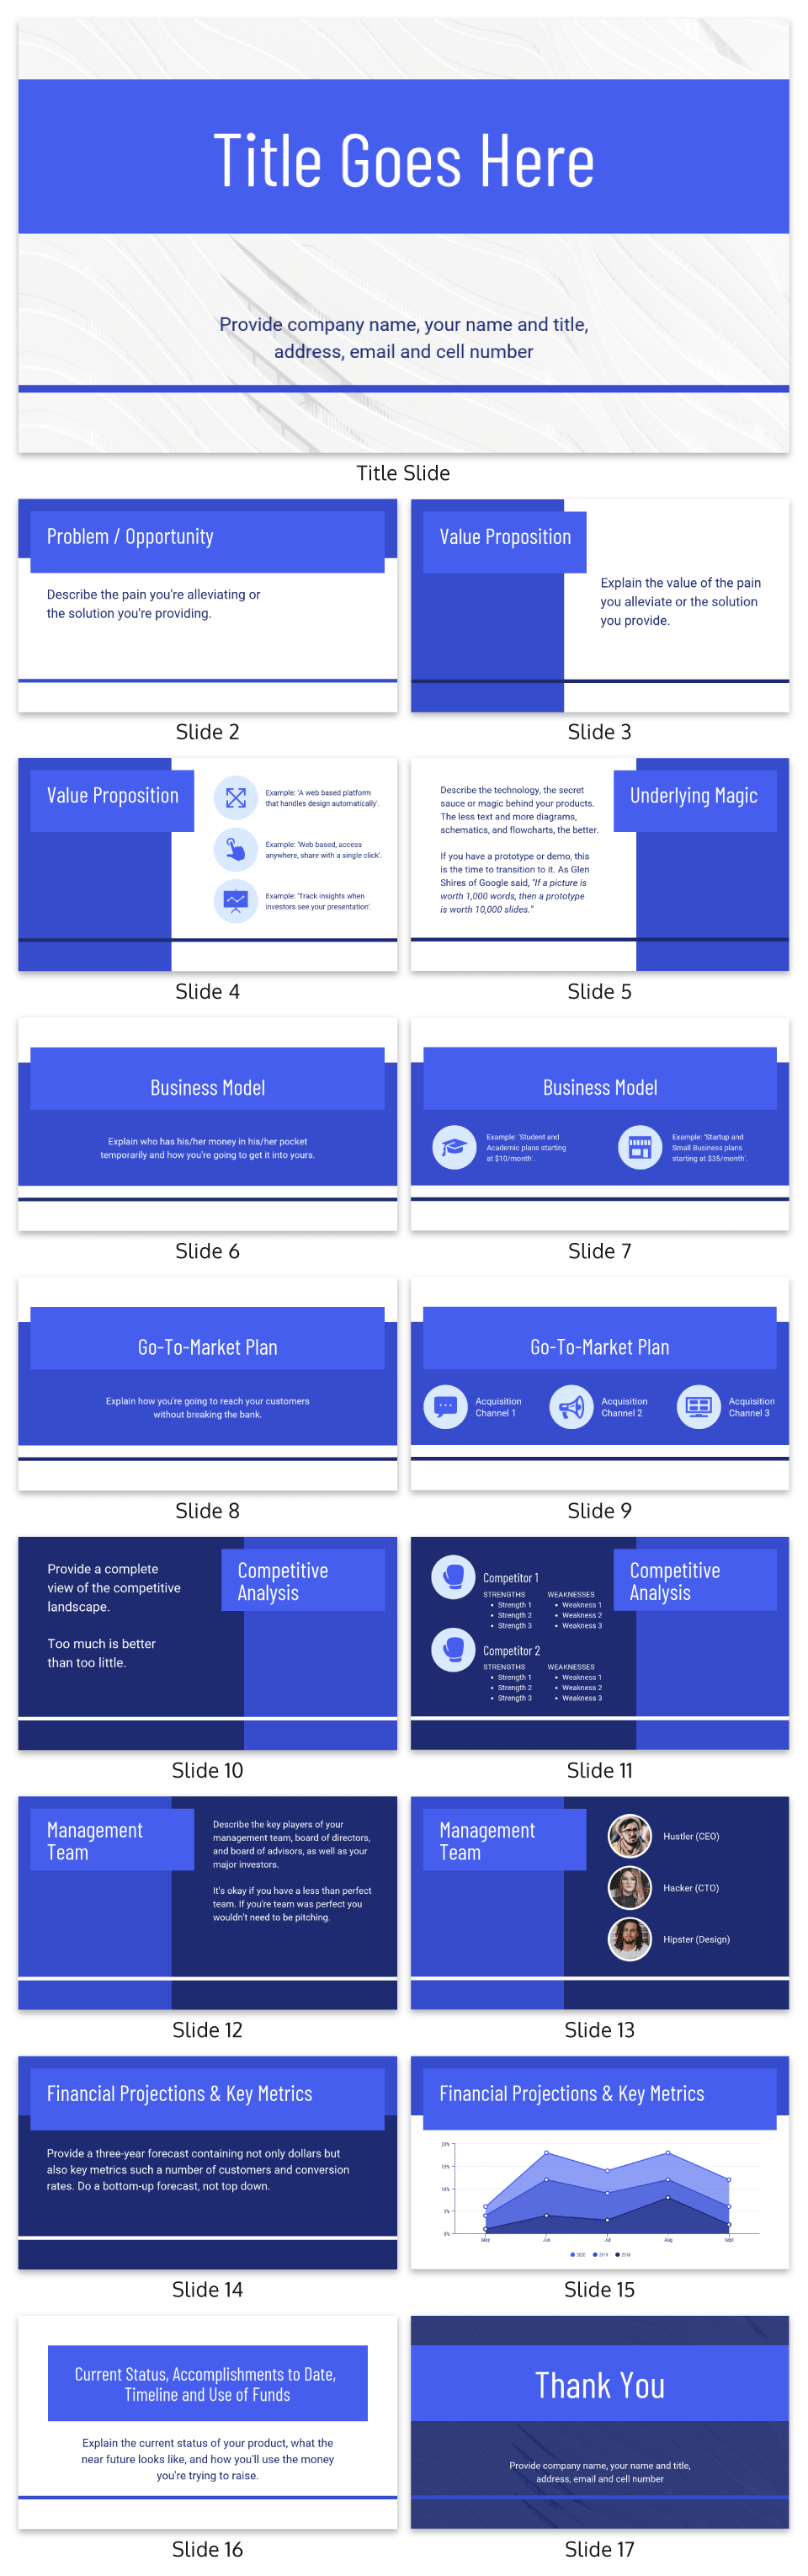 Blue Guy Kawasaki Pitch Deck Template